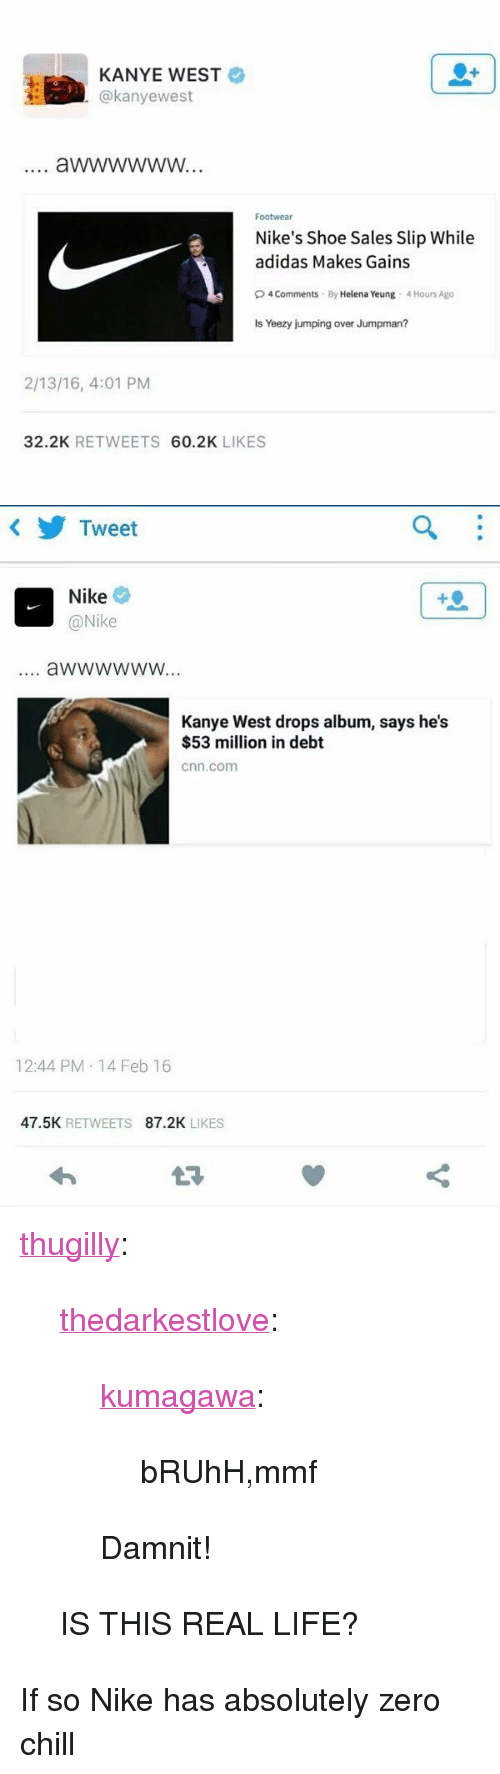 """Adidas, Chill, and cnn.com: KANYE WEST  @kanyewest  Footwear  Nike's Shoe Sales Slip While  adidas Makes Gains  O4 Comments By Helena Yeung 4 Hours Ago  Is Yeezy jumping over Jumpman?  2/13/16, 4:01 PM  32.2K RETWEETS 60.2K LIKES   Tweet  Nike  @Nike  4  aWwwwwW...  Kanye West drops album, says he's  $53 million in debt  cnn.com  12:44 PM 14 Feb 16  47.5K RETWEETS 87.2K LIKES <p><a class=""""tumblr_blog"""" href=""""http://thugilly.tumblr.com/post/139344119488"""">thugilly</a>:</p> <blockquote> <p><a class=""""tumblr_blog"""" href=""""http://thedarkestlove.tumblr.com/post/139344021532"""">thedarkestlove</a>:</p> <blockquote> <p><a class=""""tumblr_blog"""" href=""""http://kumagawa.tumblr.com/post/139339444294"""">kumagawa</a>:</p> <blockquote> <p>bRUhH,mmf</p> </blockquote> <p>Damnit!</p> </blockquote> <p>IS THIS REAL LIFE?</p> </blockquote>  <p>If so Nike has absolutely zero chill</p>"""